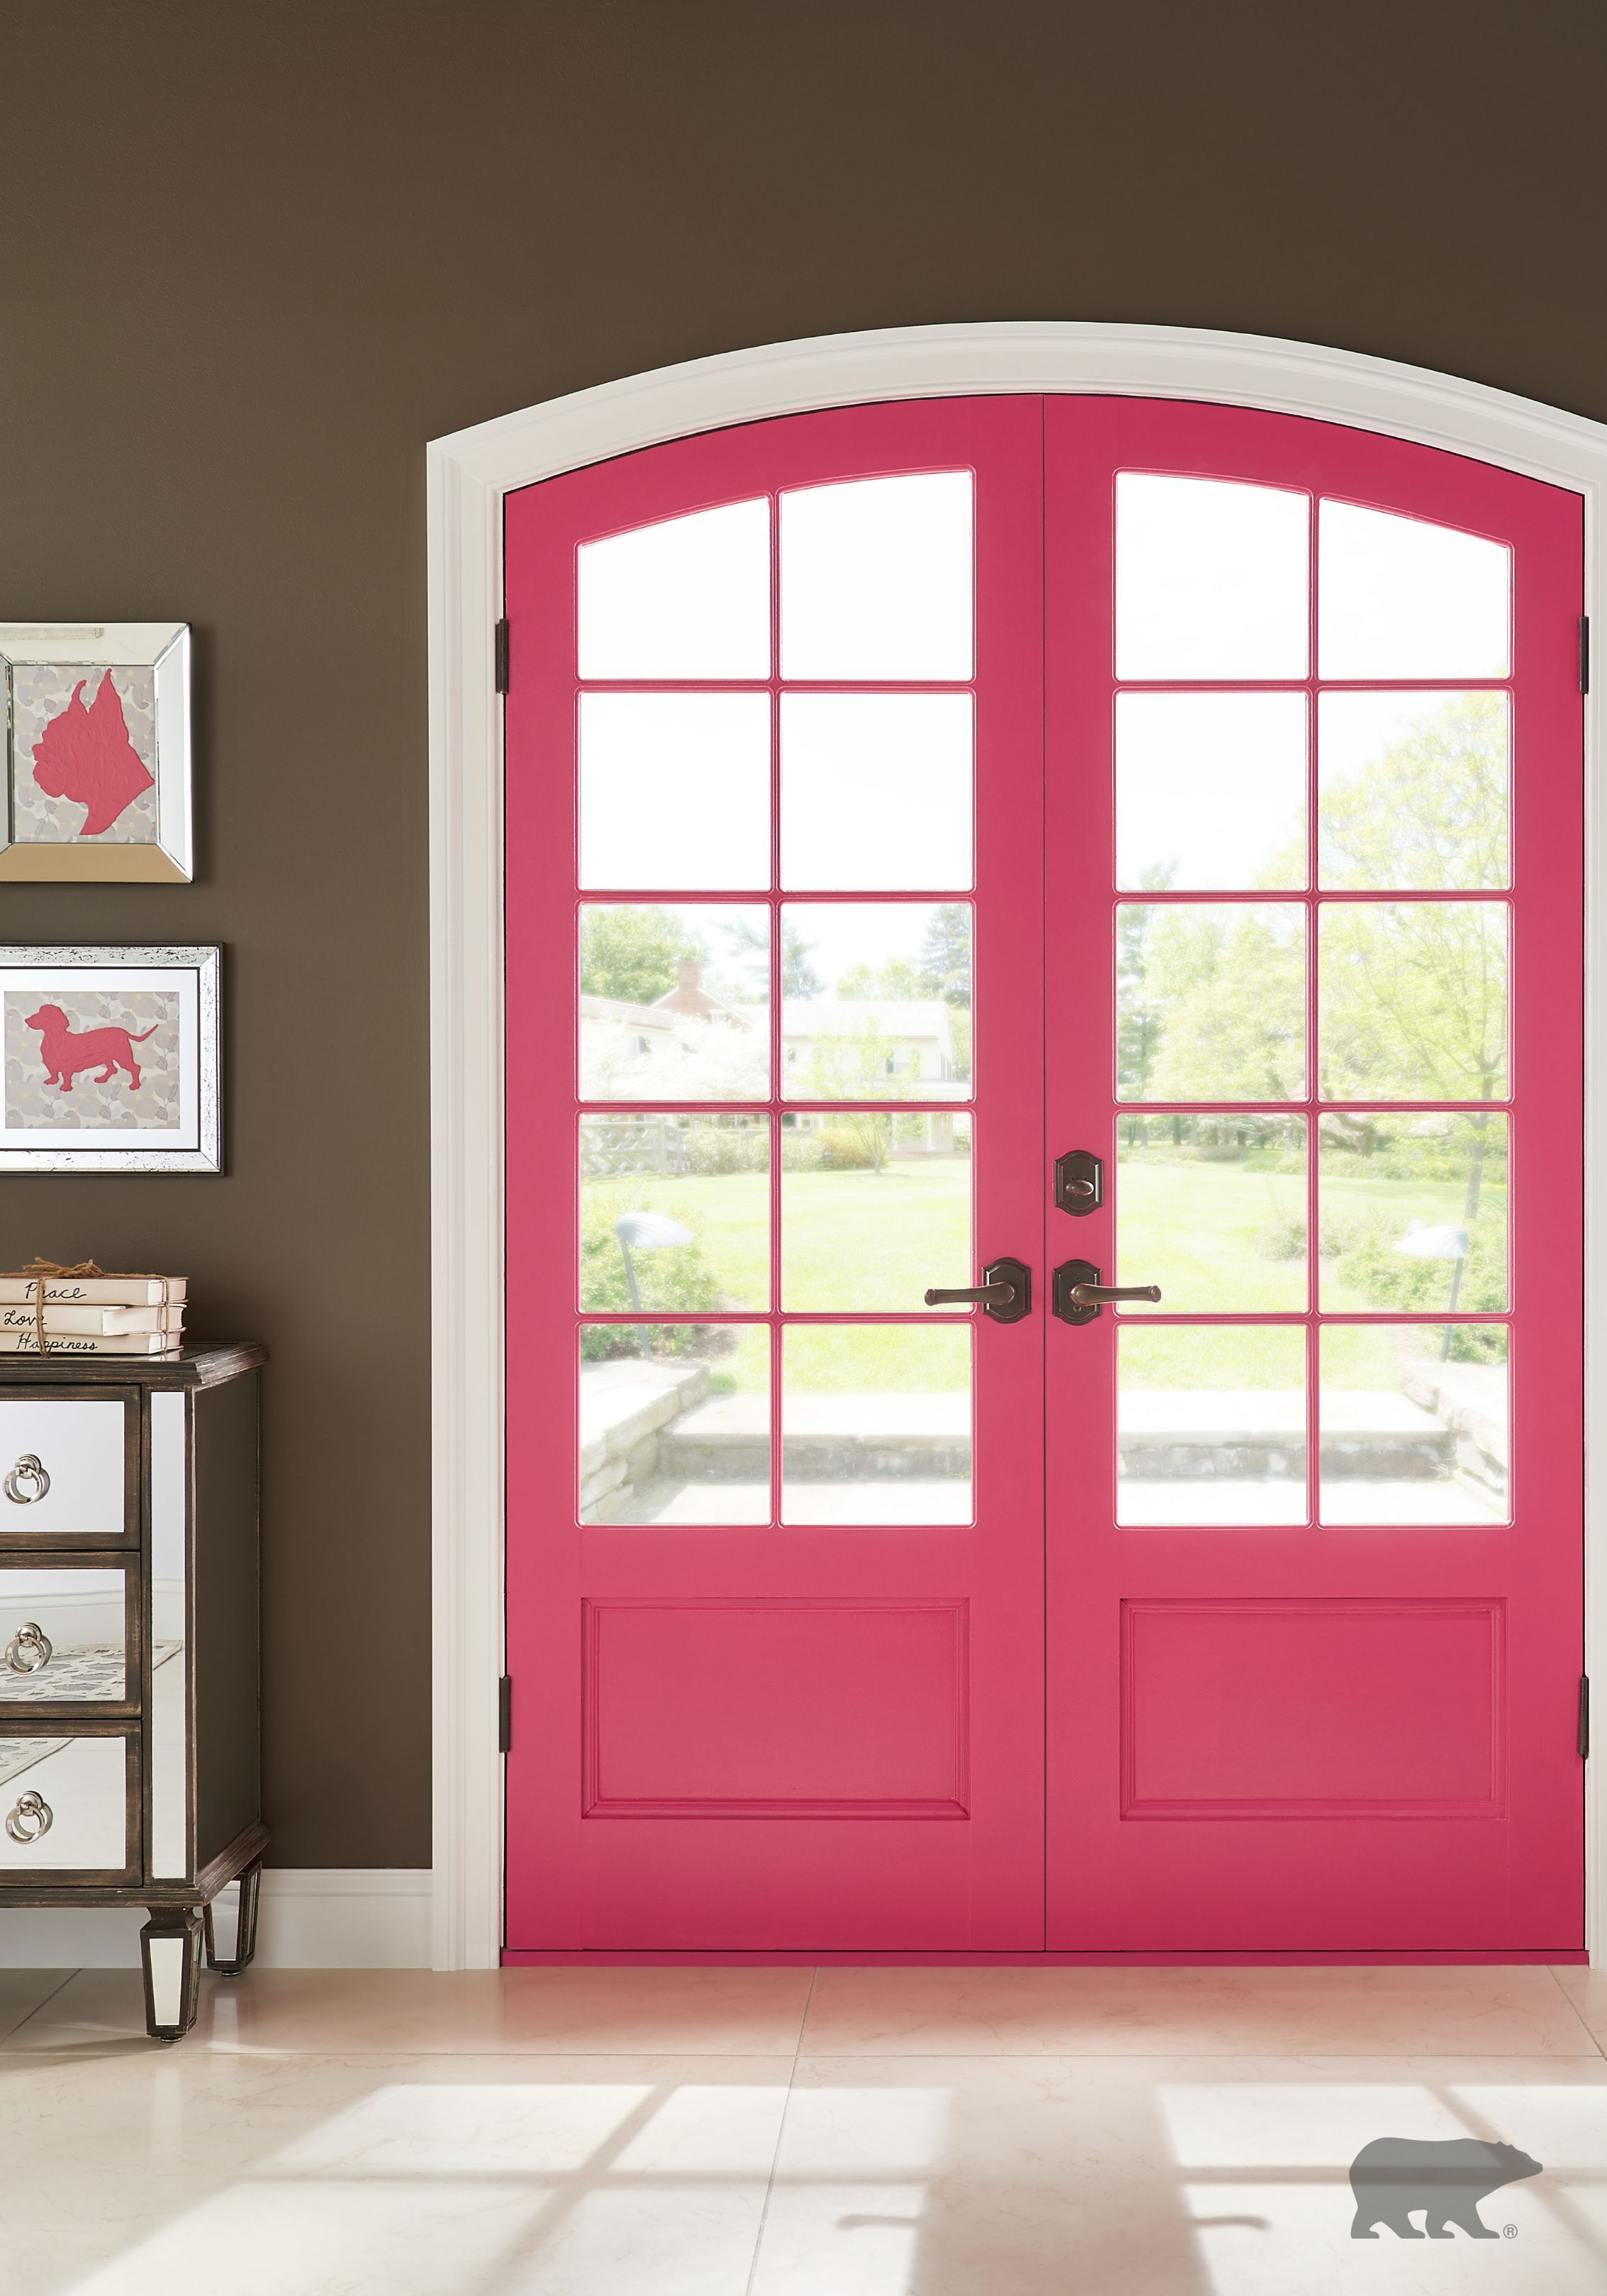 Update your entryway with a bold color from BEHR paint to give your